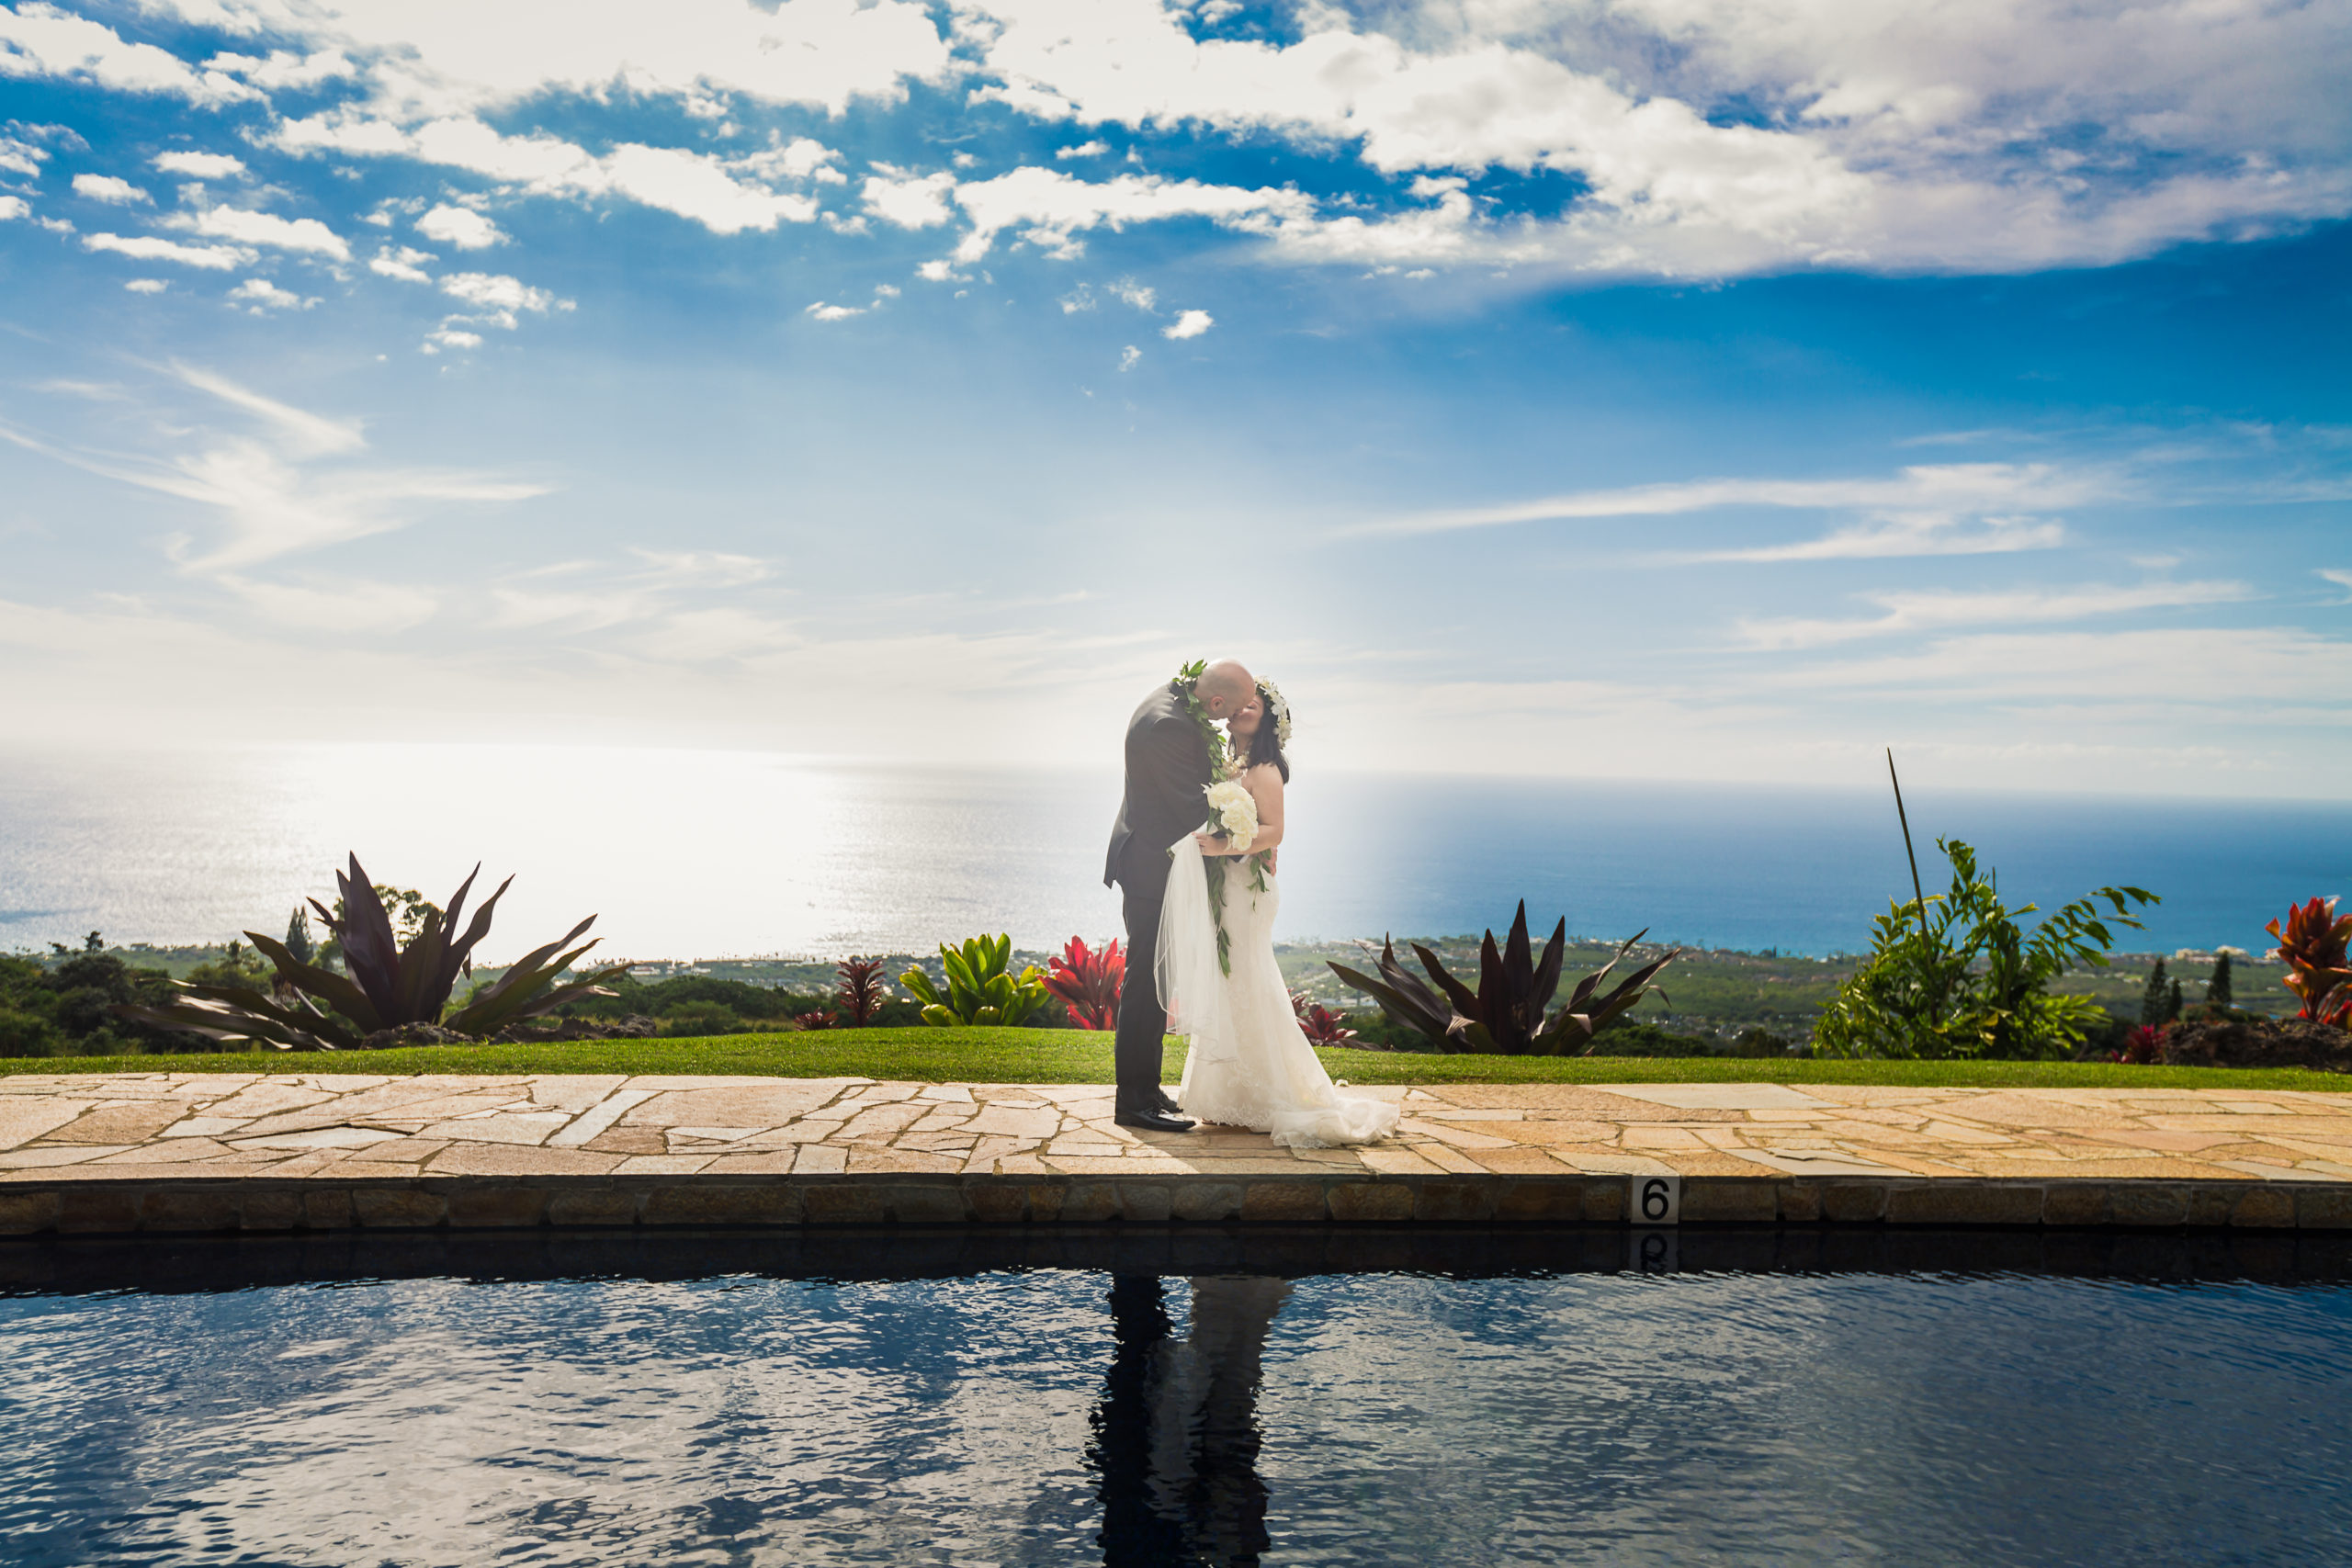 Bride and groom kissing by the pool in front of the ocean